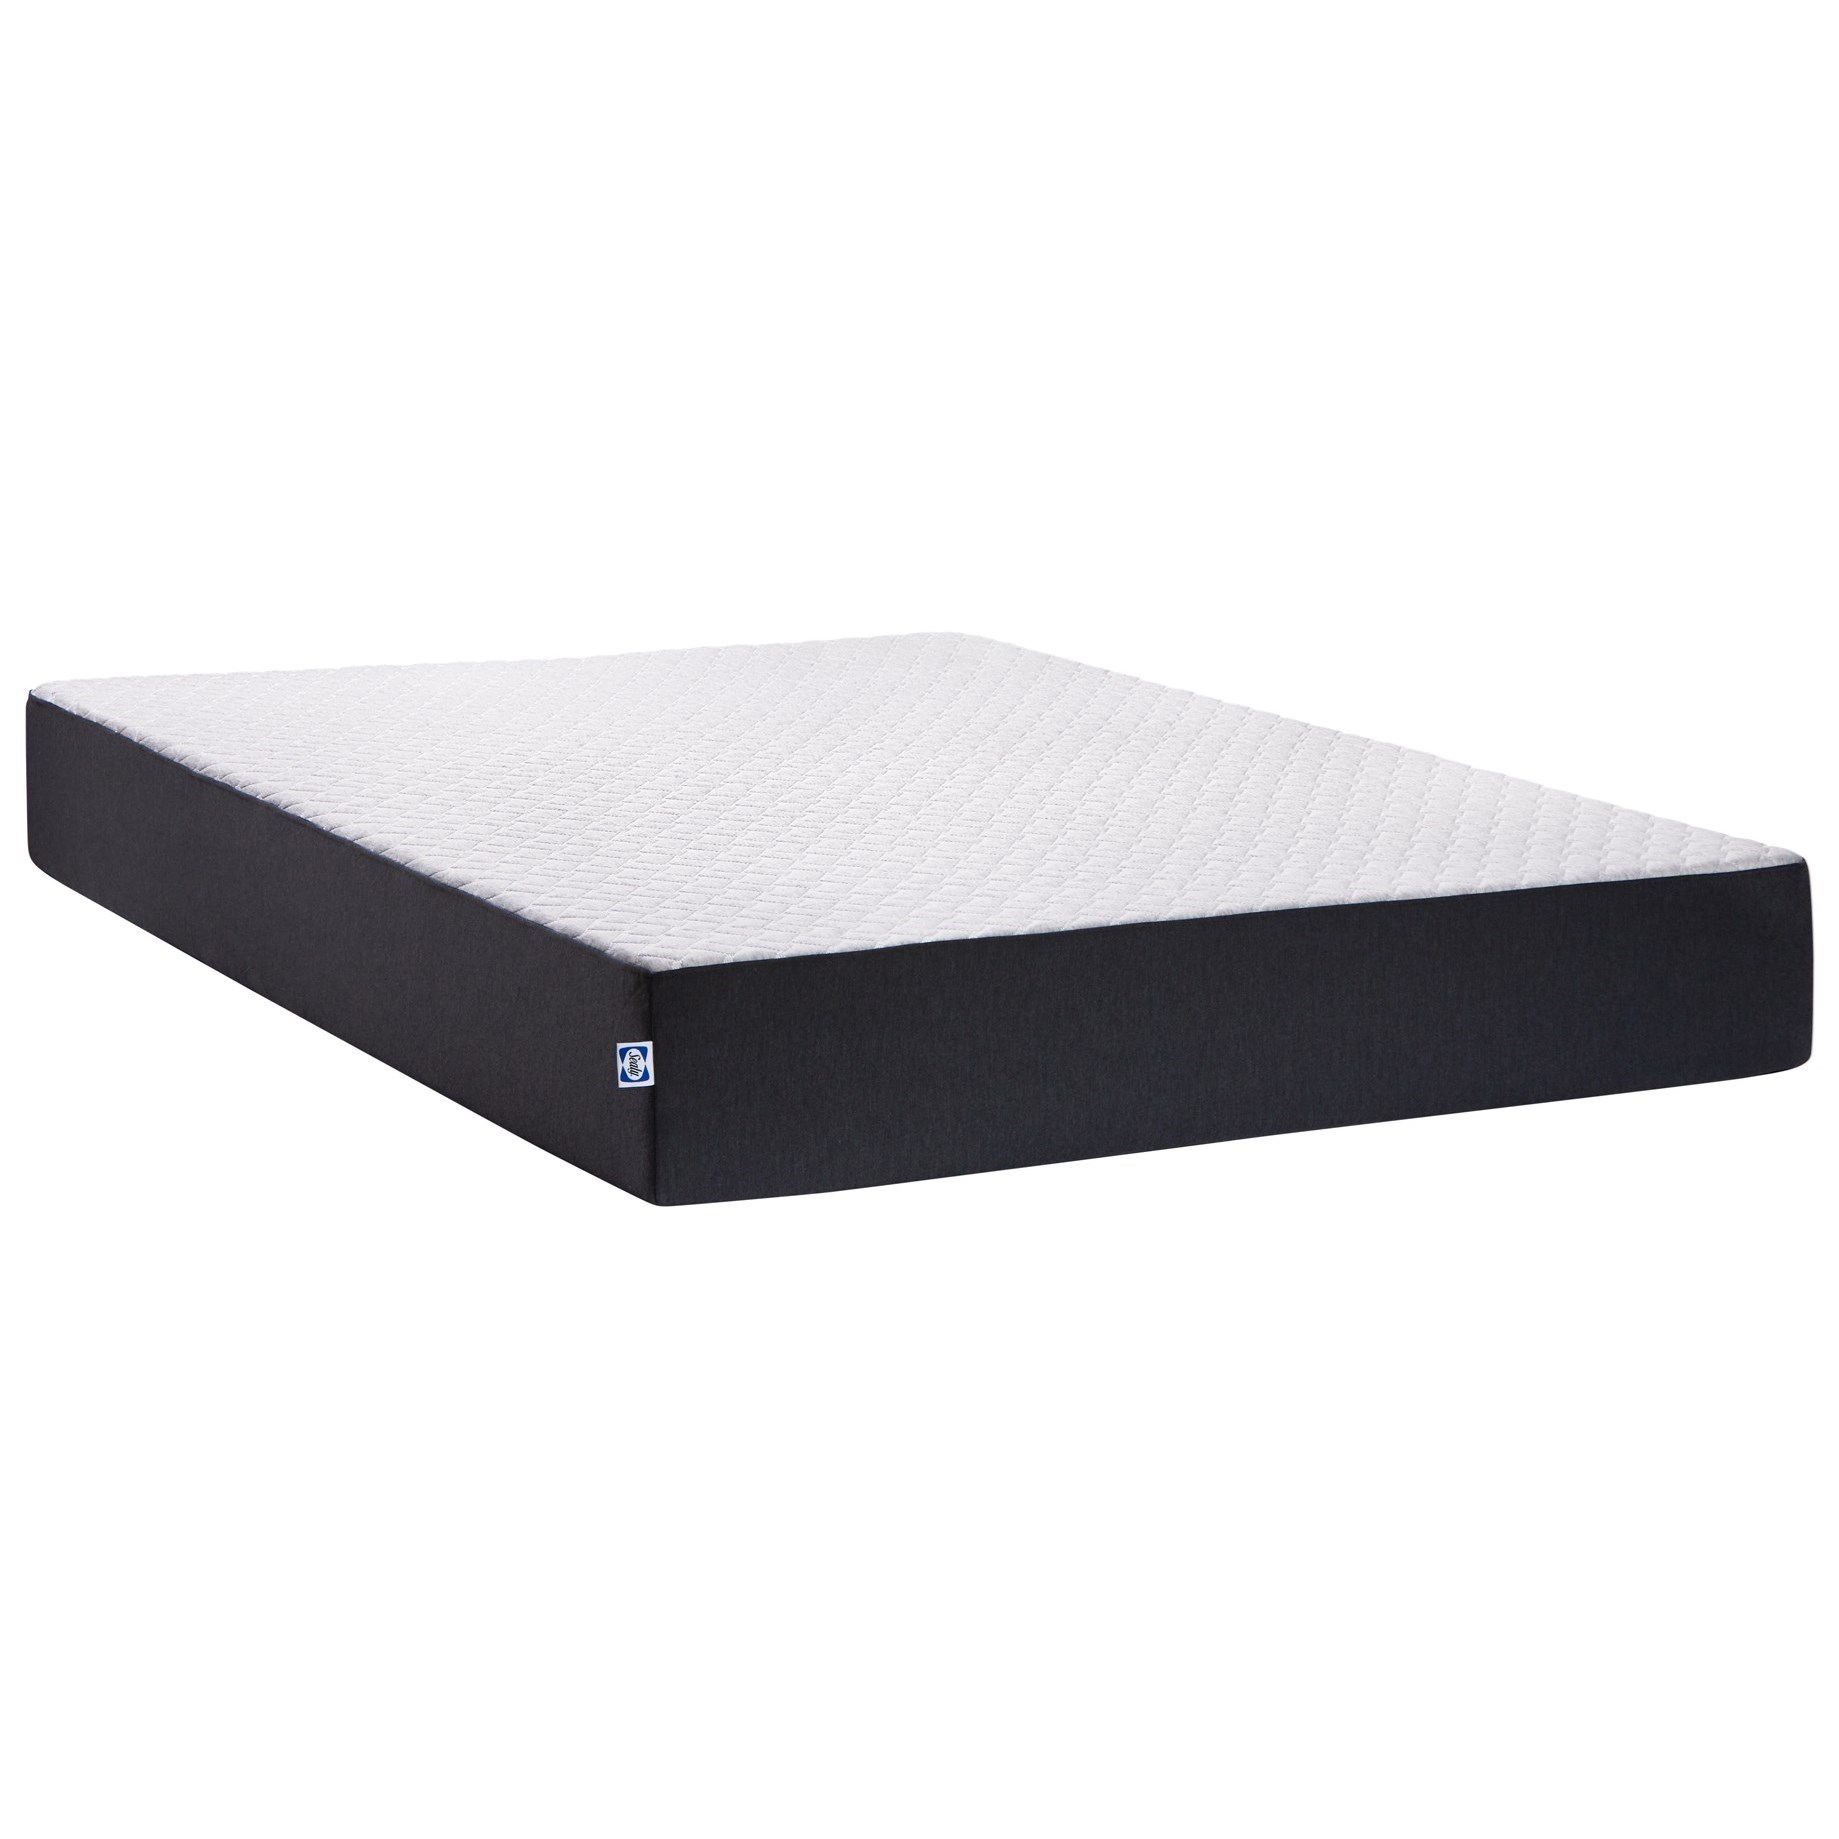 "Full 10"" Medium Feel Hybrid Mattress"